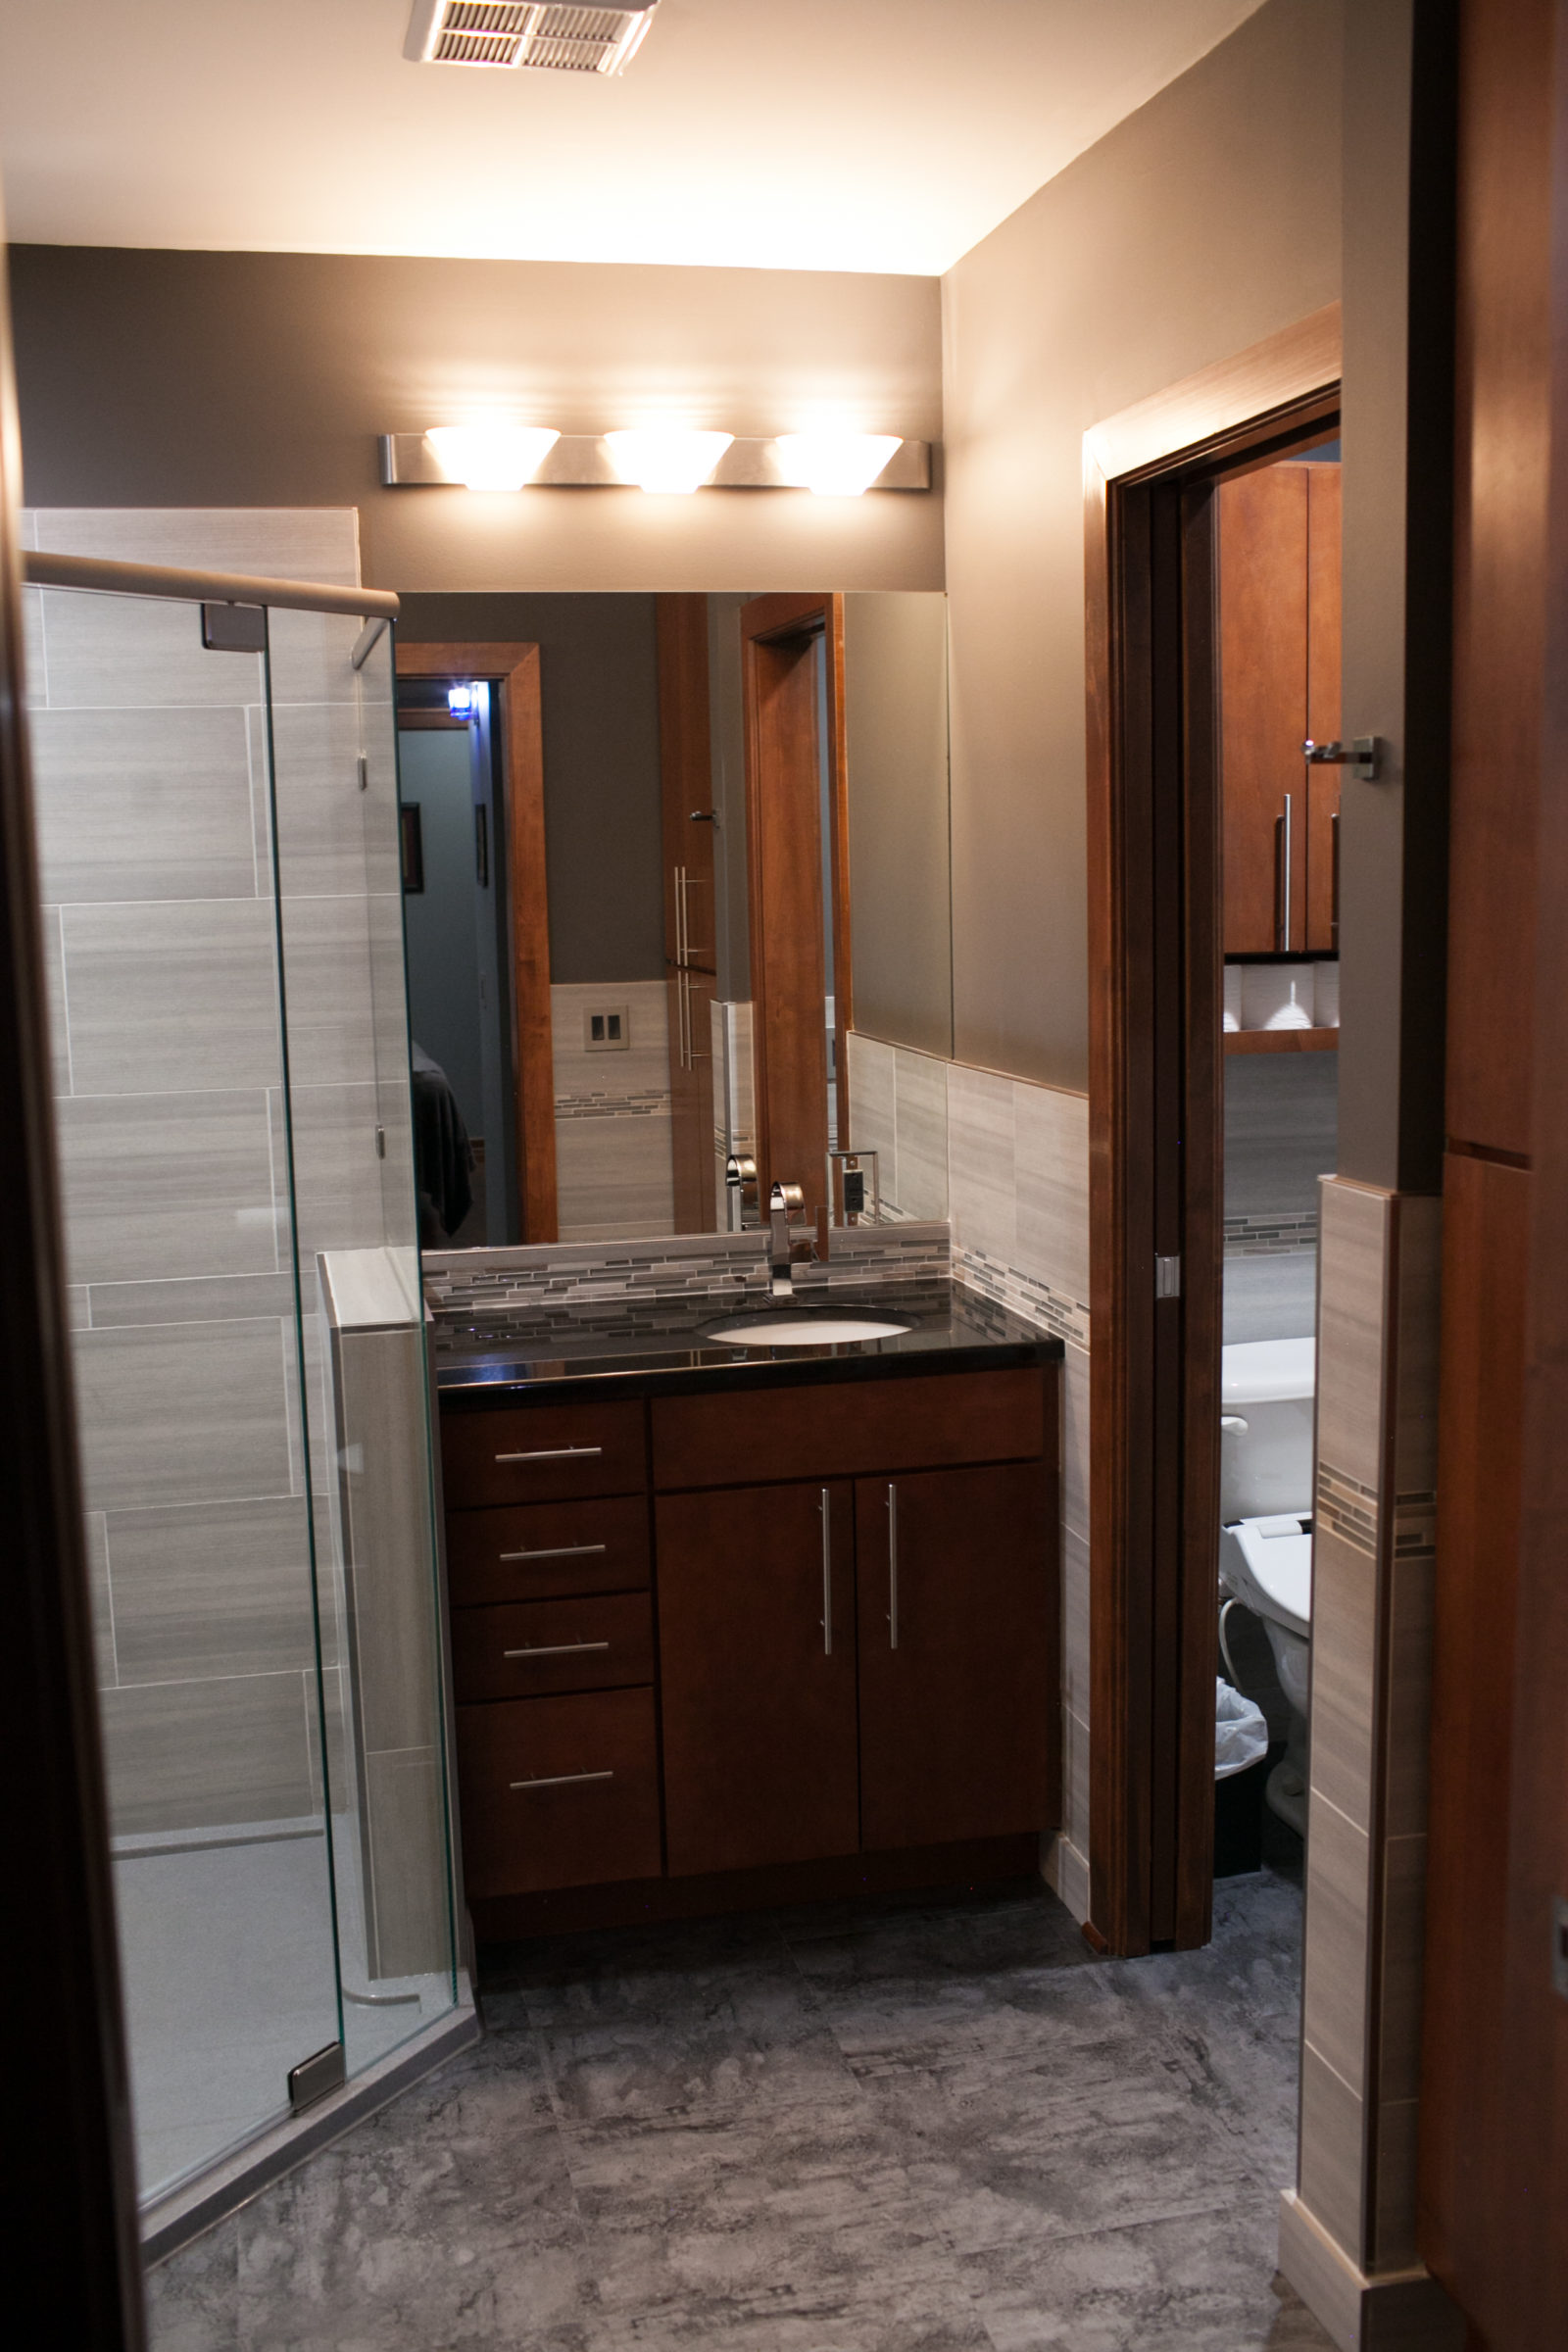 Bathroom Remodeling Wichita Ks Home Bathroom Remodeling Ideas - Bathroom remodel wichita ks